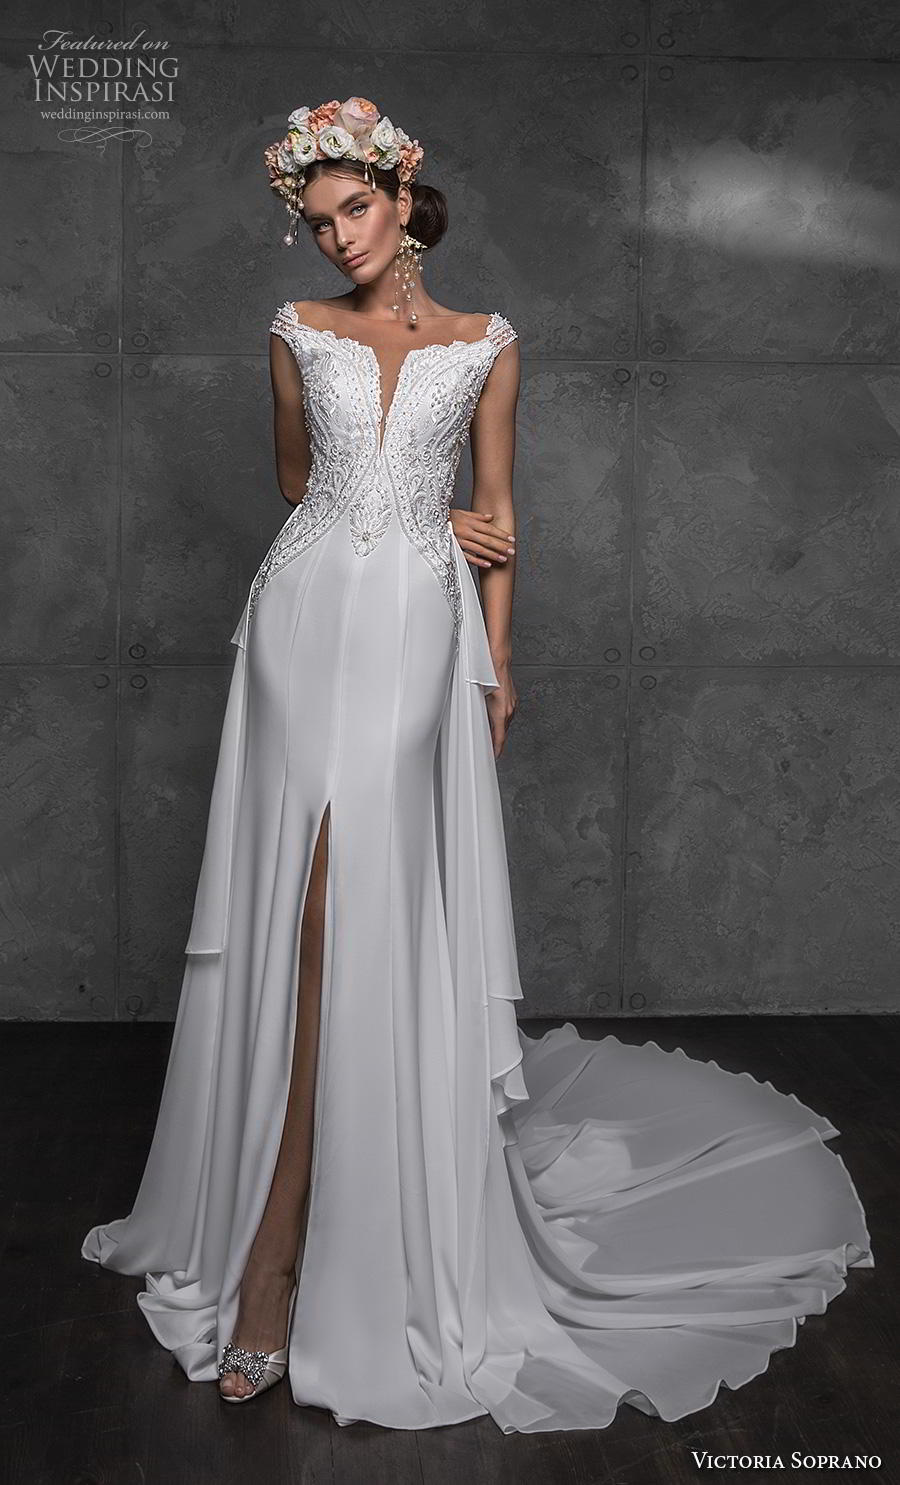 victoria soprano 2020 bridal cap sleeves illusion bateau heavily embellished bodice slit skirt elegant modified a line wedding dress sheer button back chapel train (2) mv